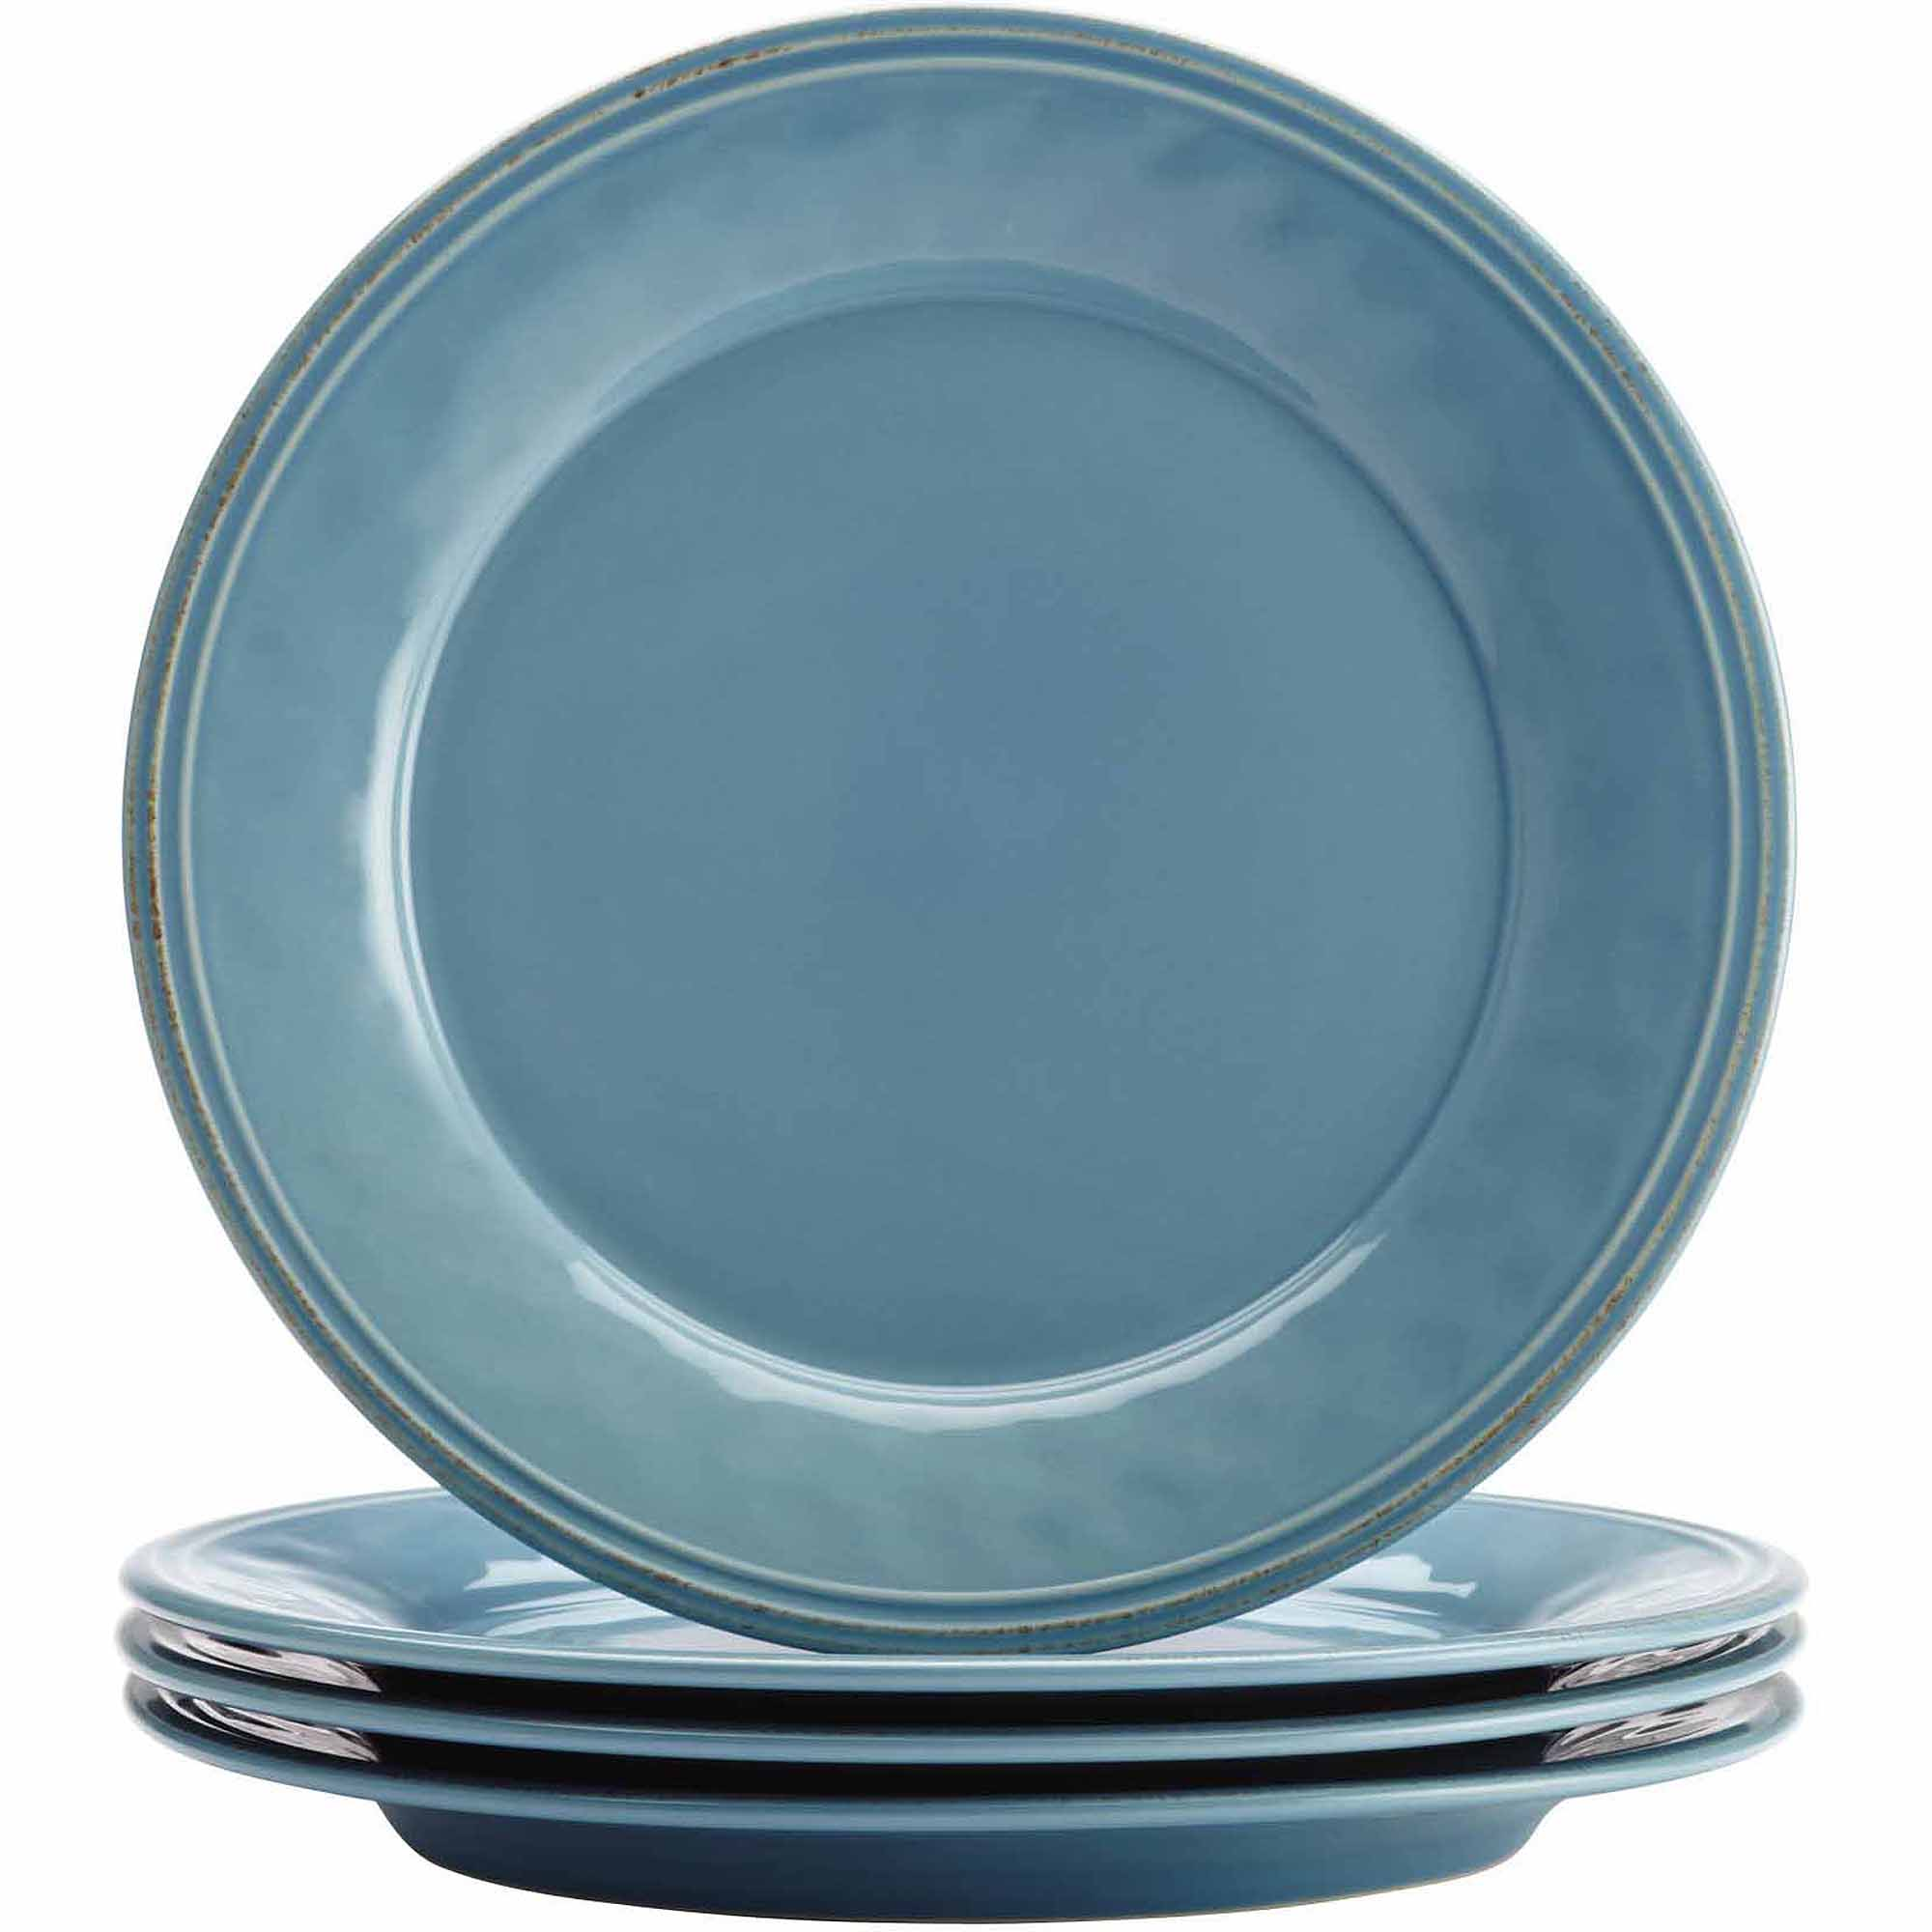 Stoneware Dinnerware Sets | Dinnerware Sets Stoneware | Square Dinner Plate Sets